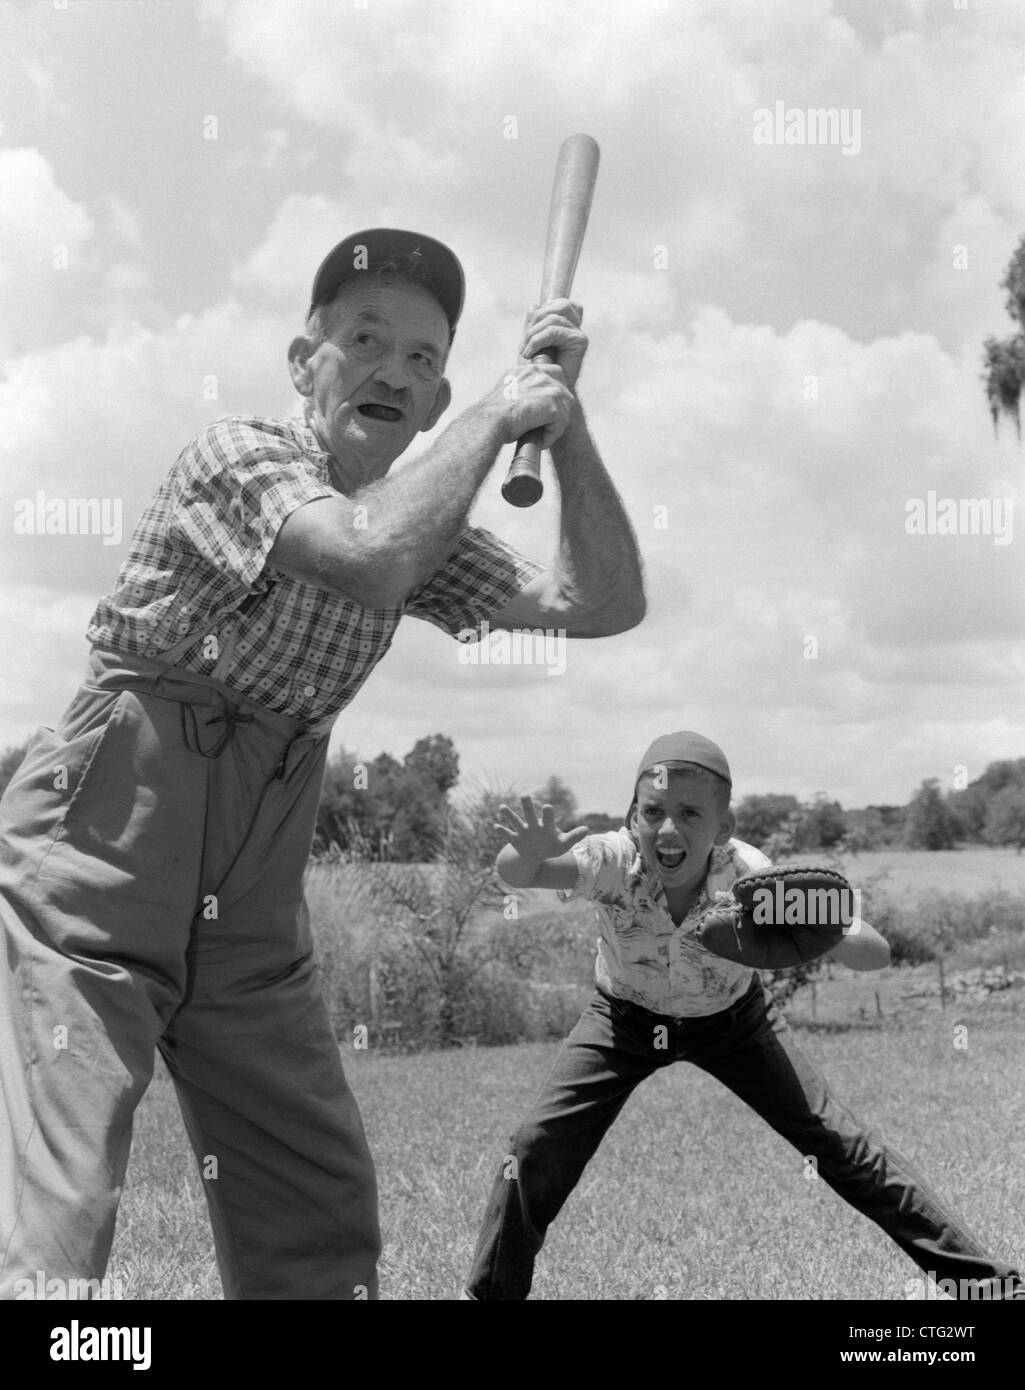 1950s GRANDFATHER AT BAT WITH BOY AS CATCHER PLAYING BASEBALL - Stock Image